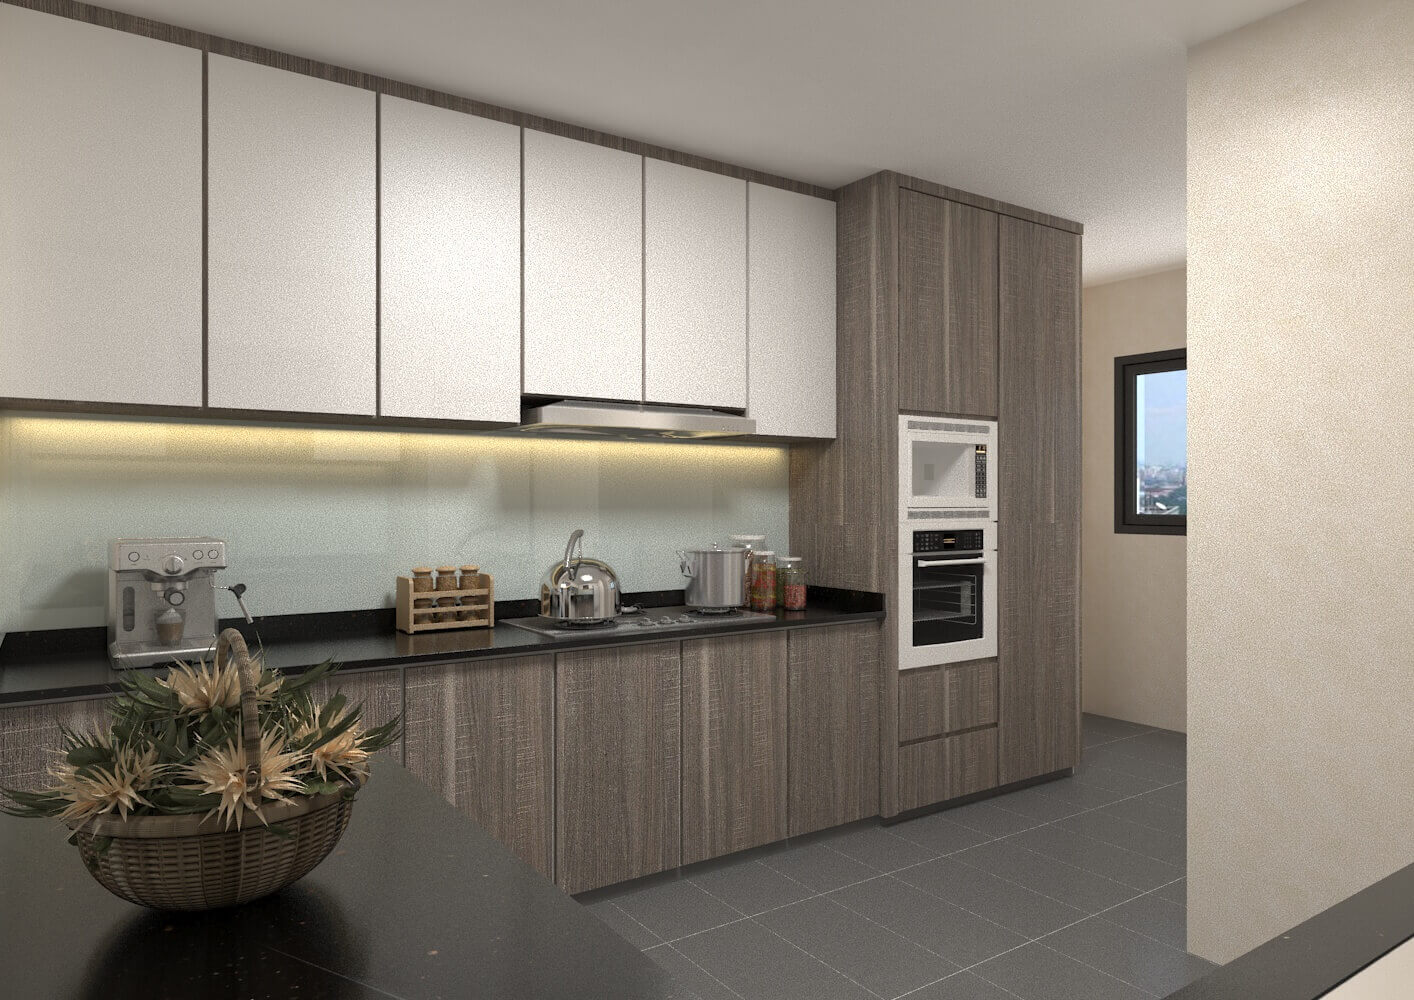 4 Room HDB4 Room HDB   Laurus Design Pte Ltd. Hdb 4 Room Kitchen Design. Home Design Ideas